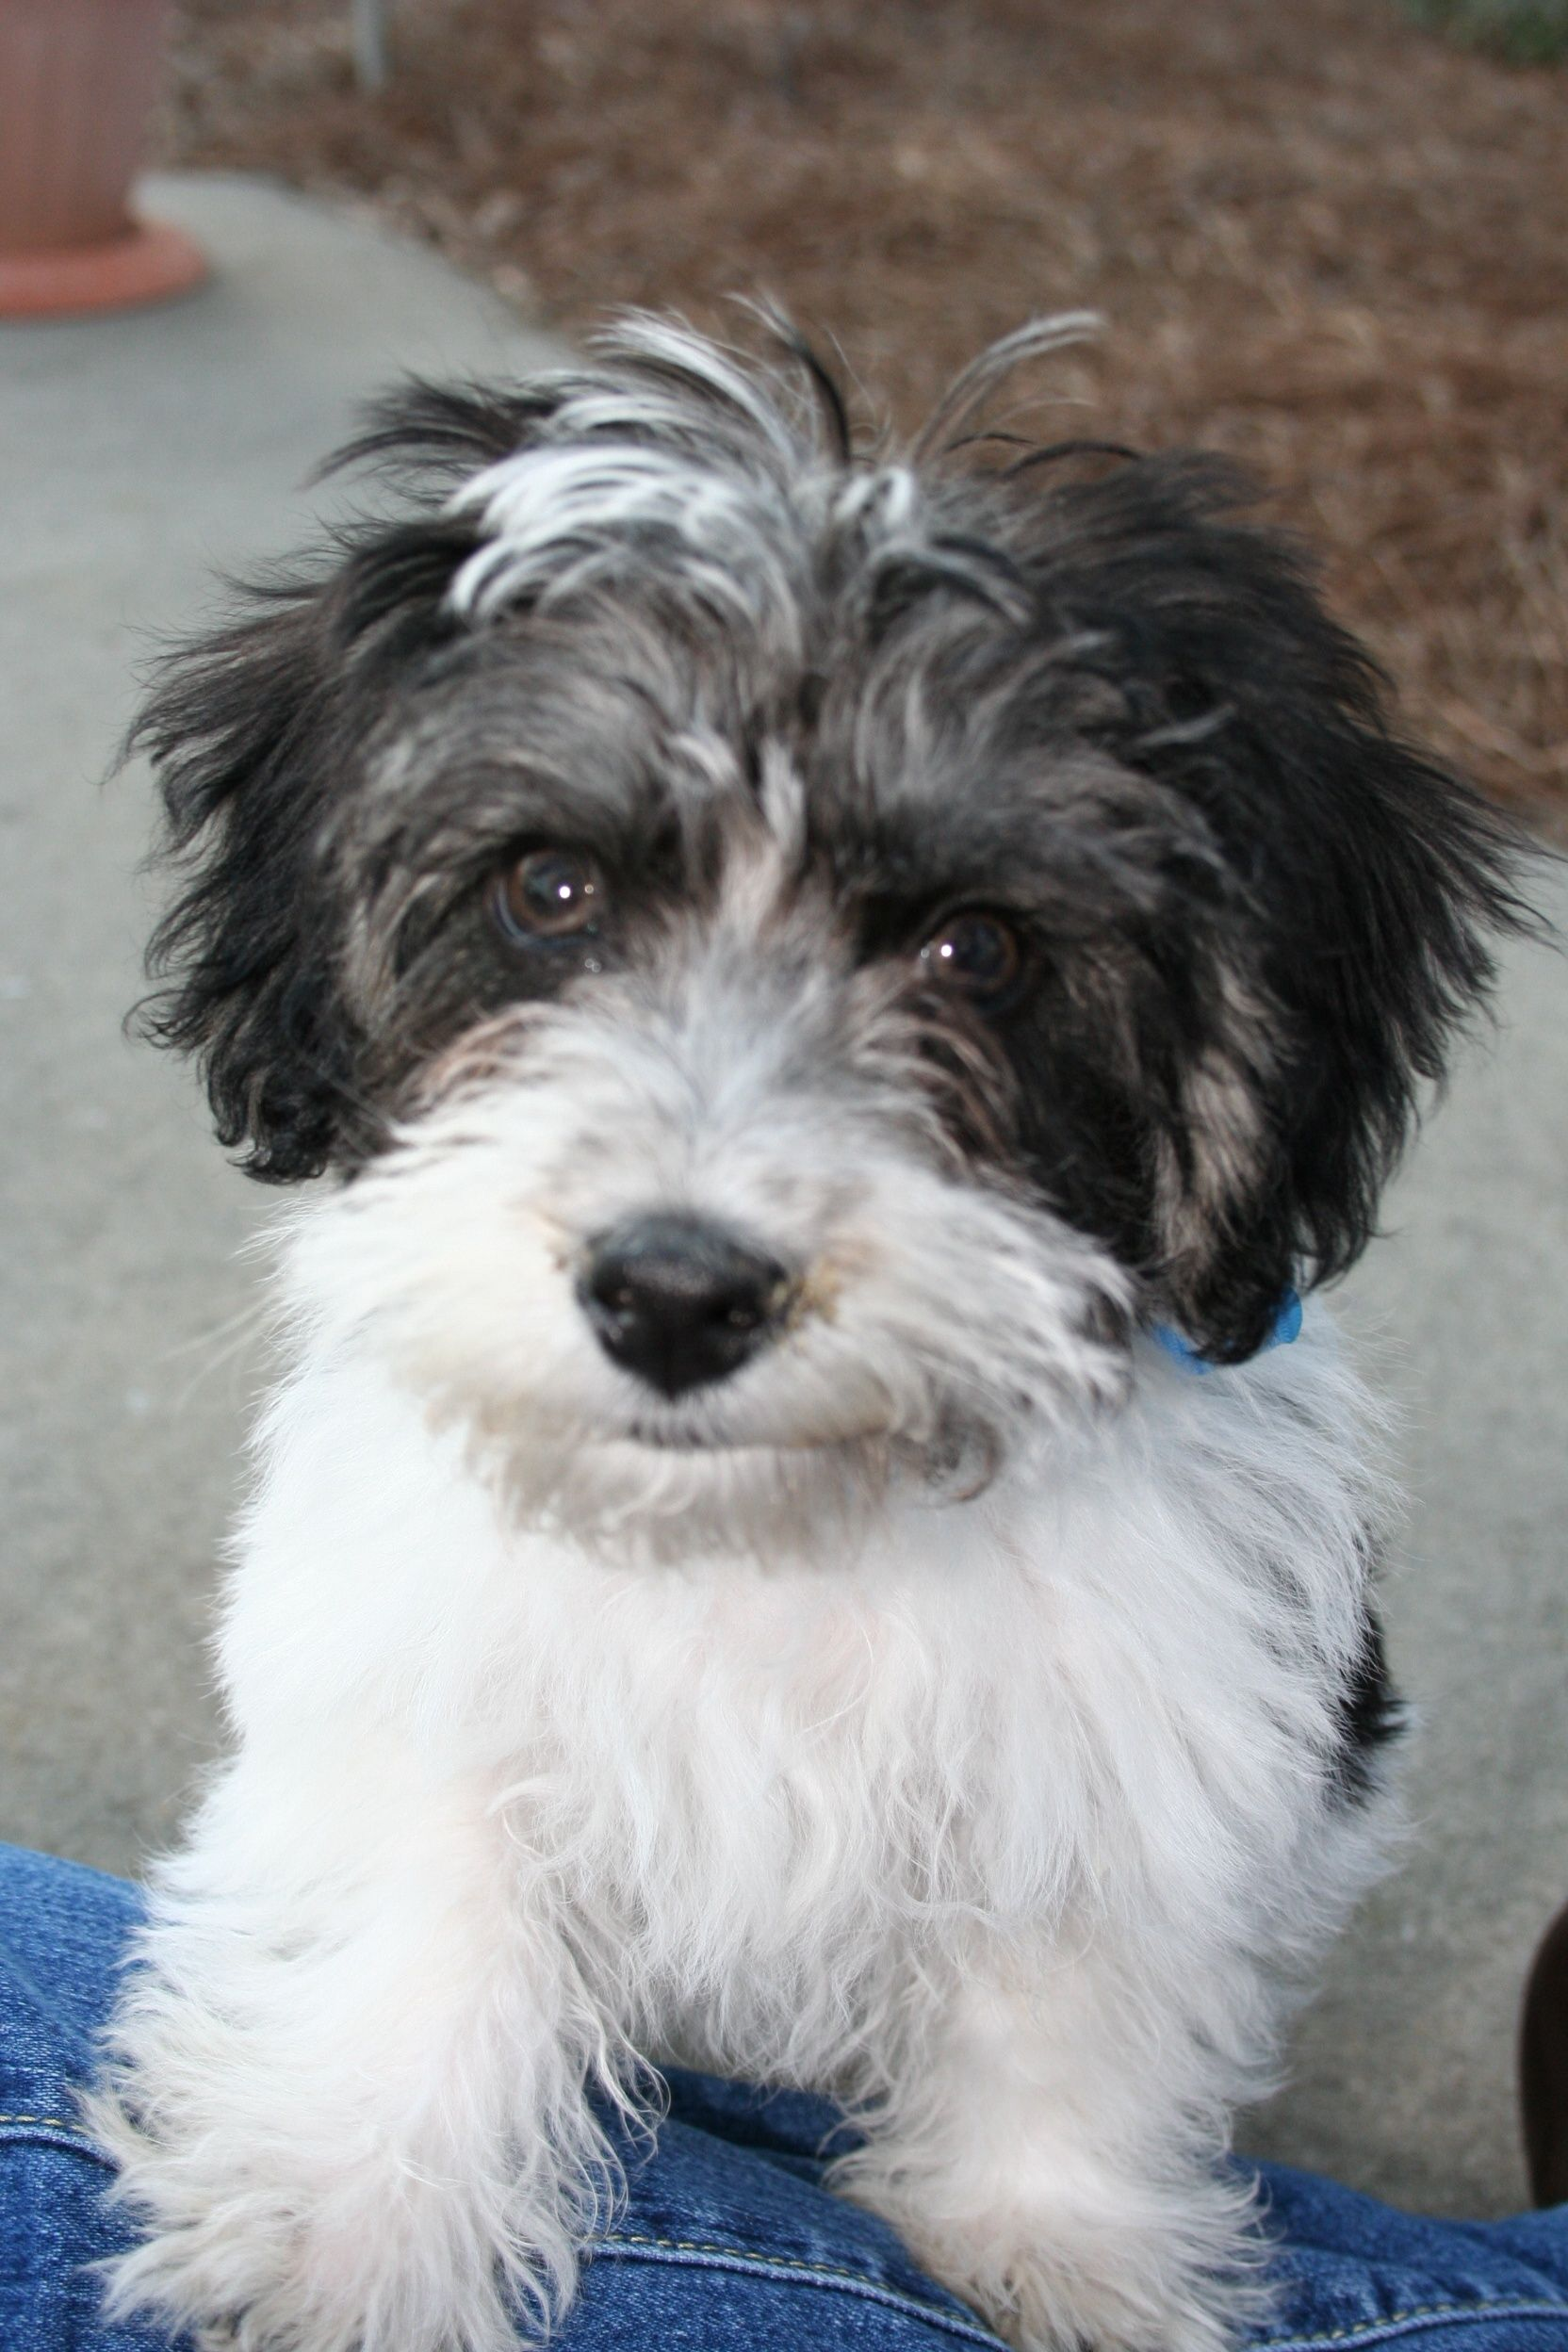 Pin By Mary Severns On Puppy Love Poodle Mix Poodle Mix Dogs Cute Dog Mixes